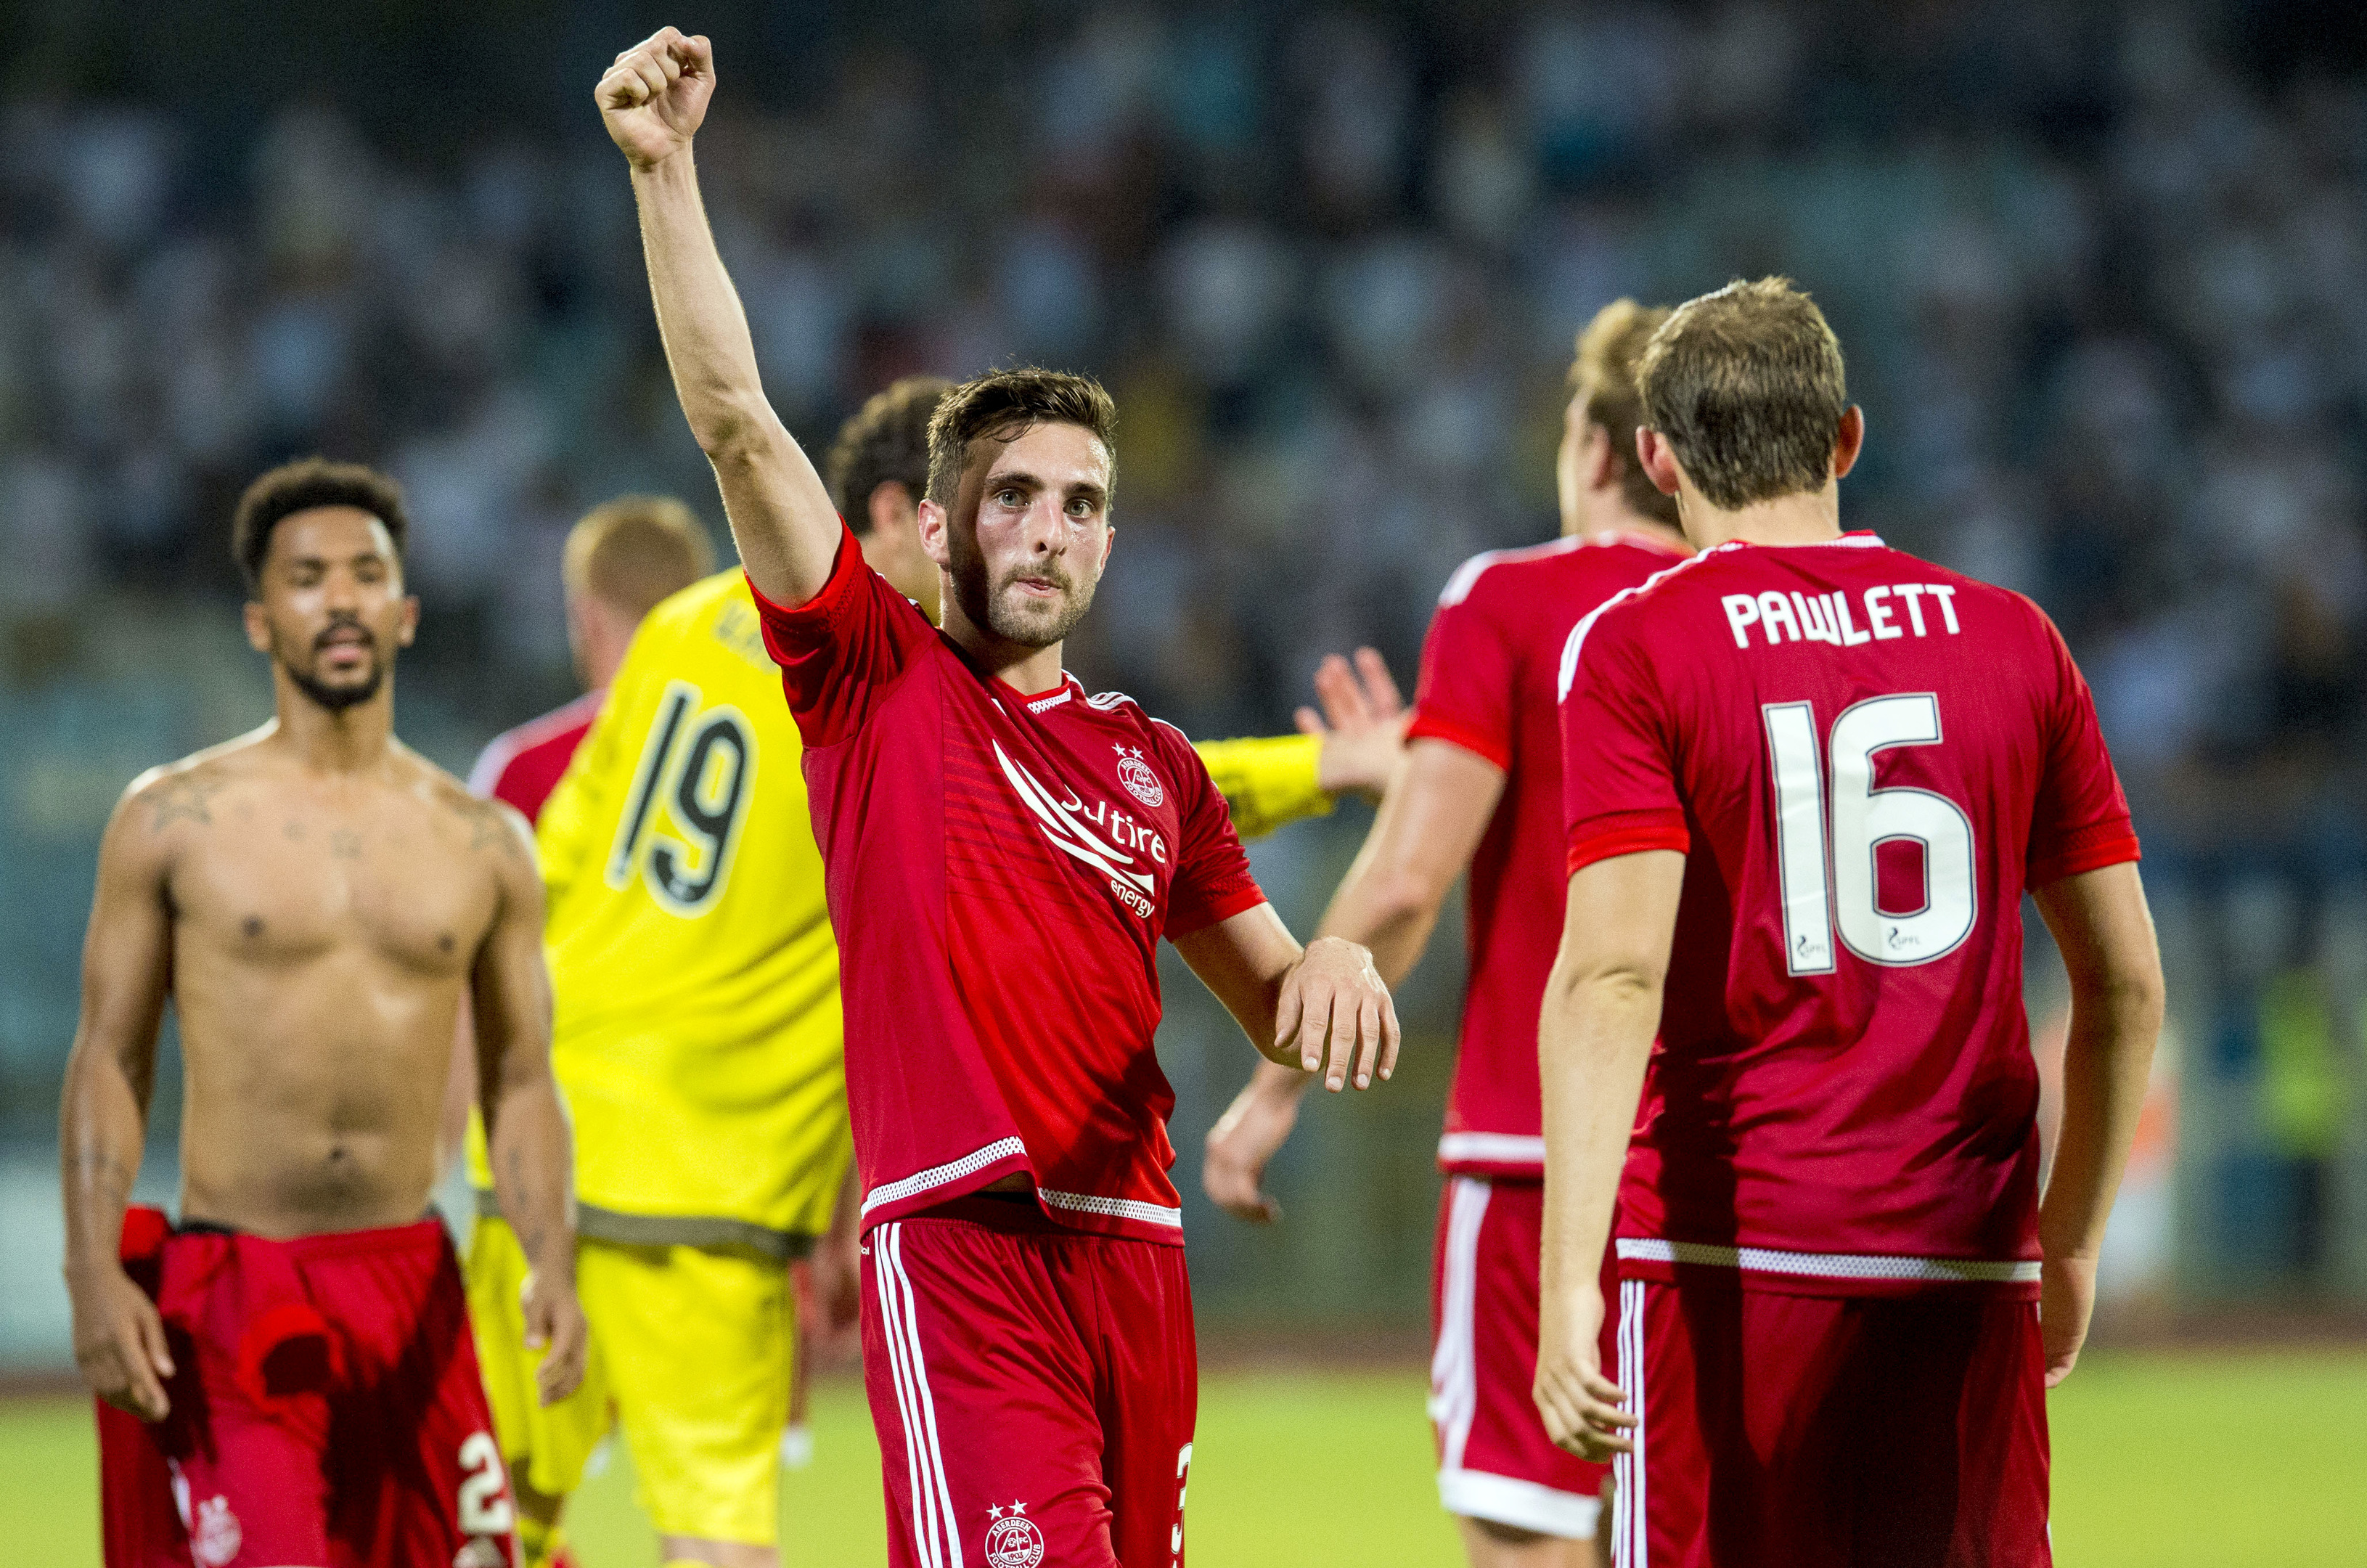 Aberdeen's Greame Shinnie salutes the travelling fans